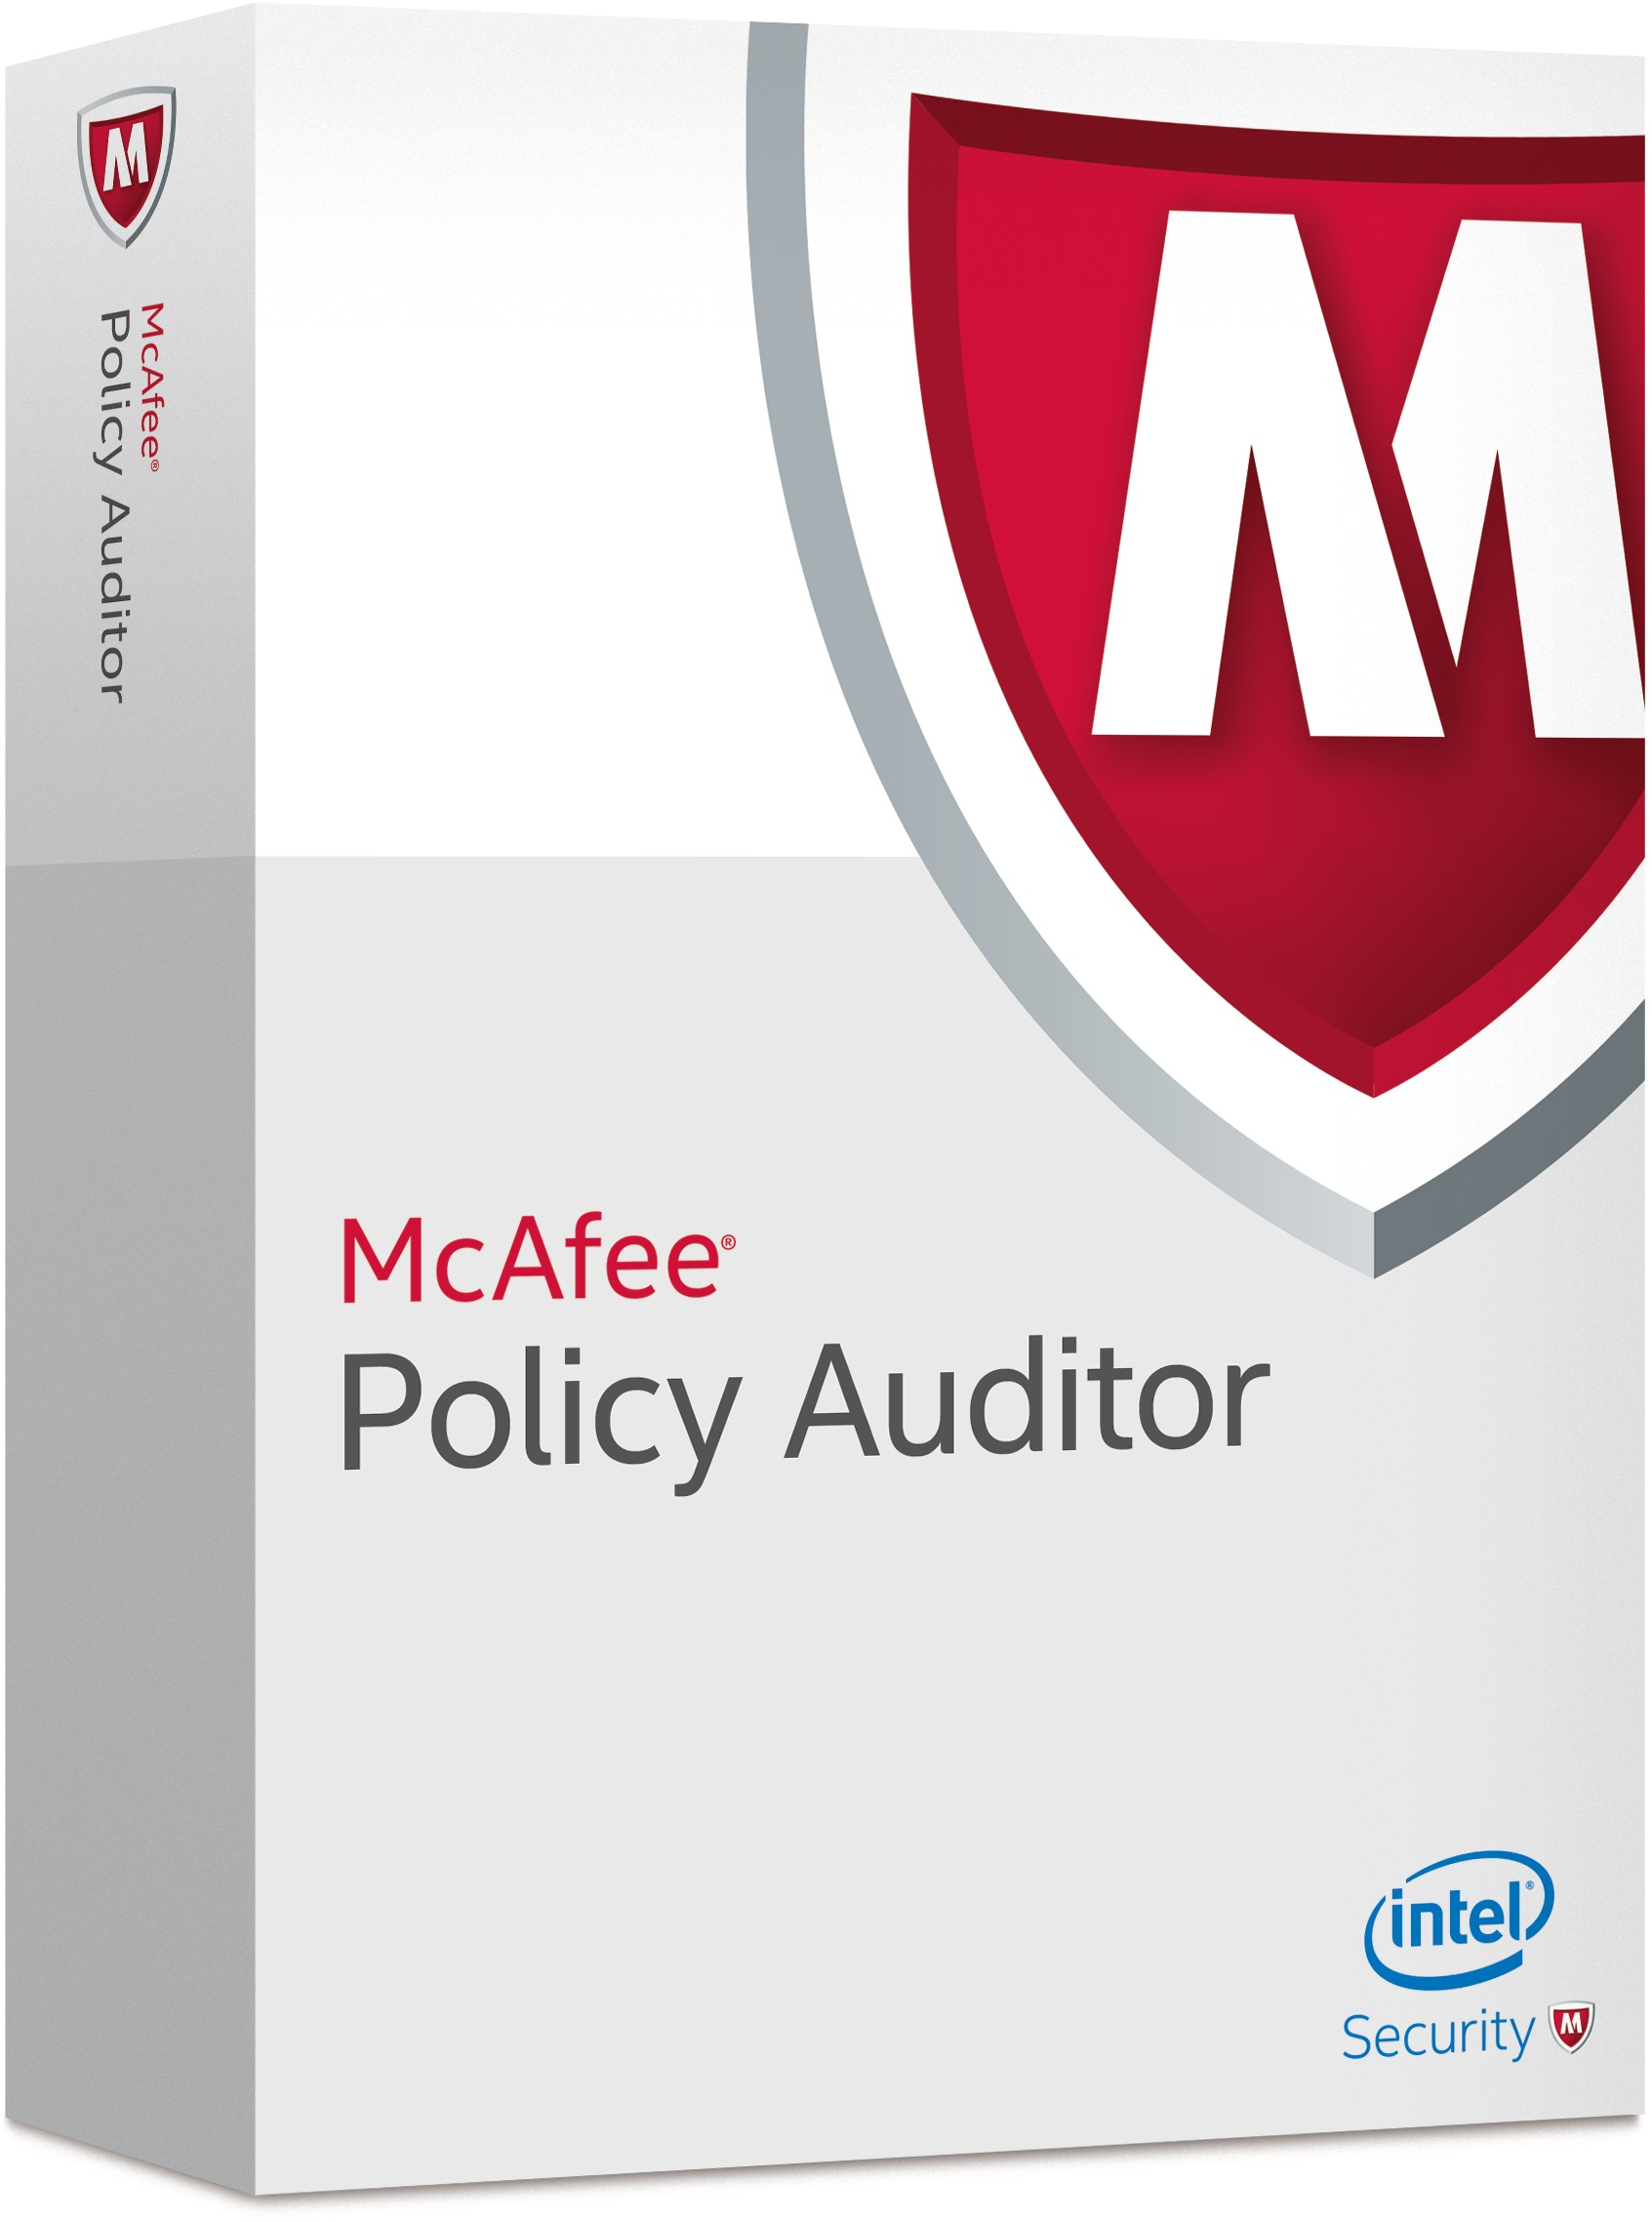 1 Jahr Gold Support für McAfee Policy Auditor for Servers Lizenzstaffel Win/Mac/Lin, Multilingual (101-250 User) (PASYFM-AB-DA)